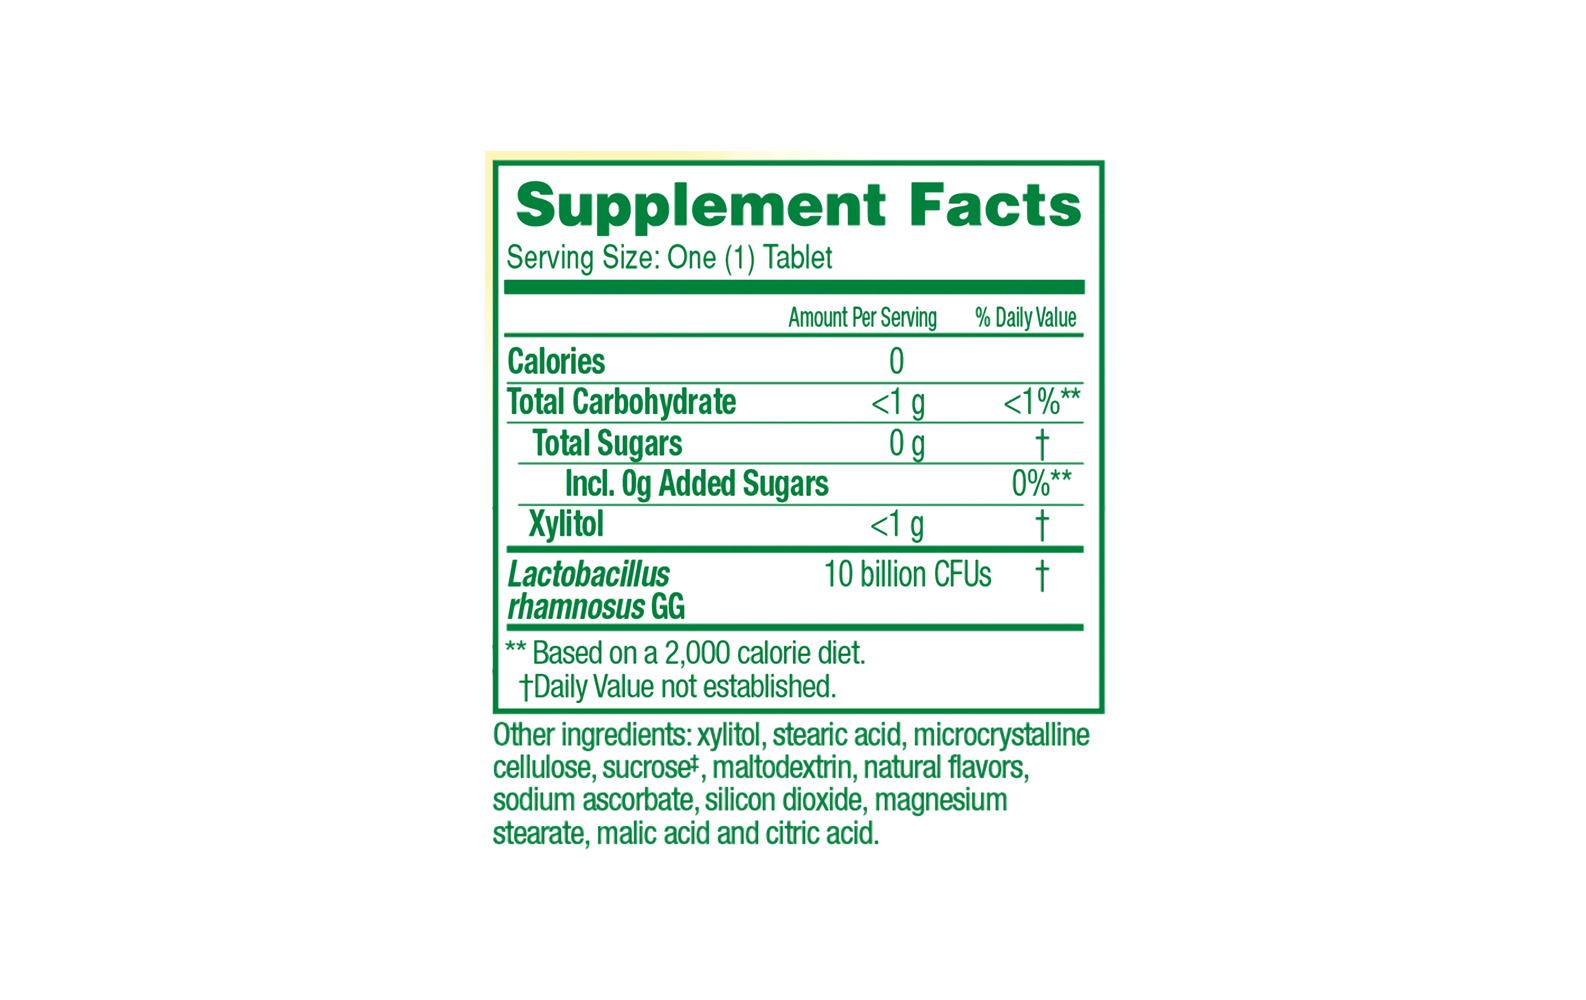 Supplement Facts for Orange Chewables